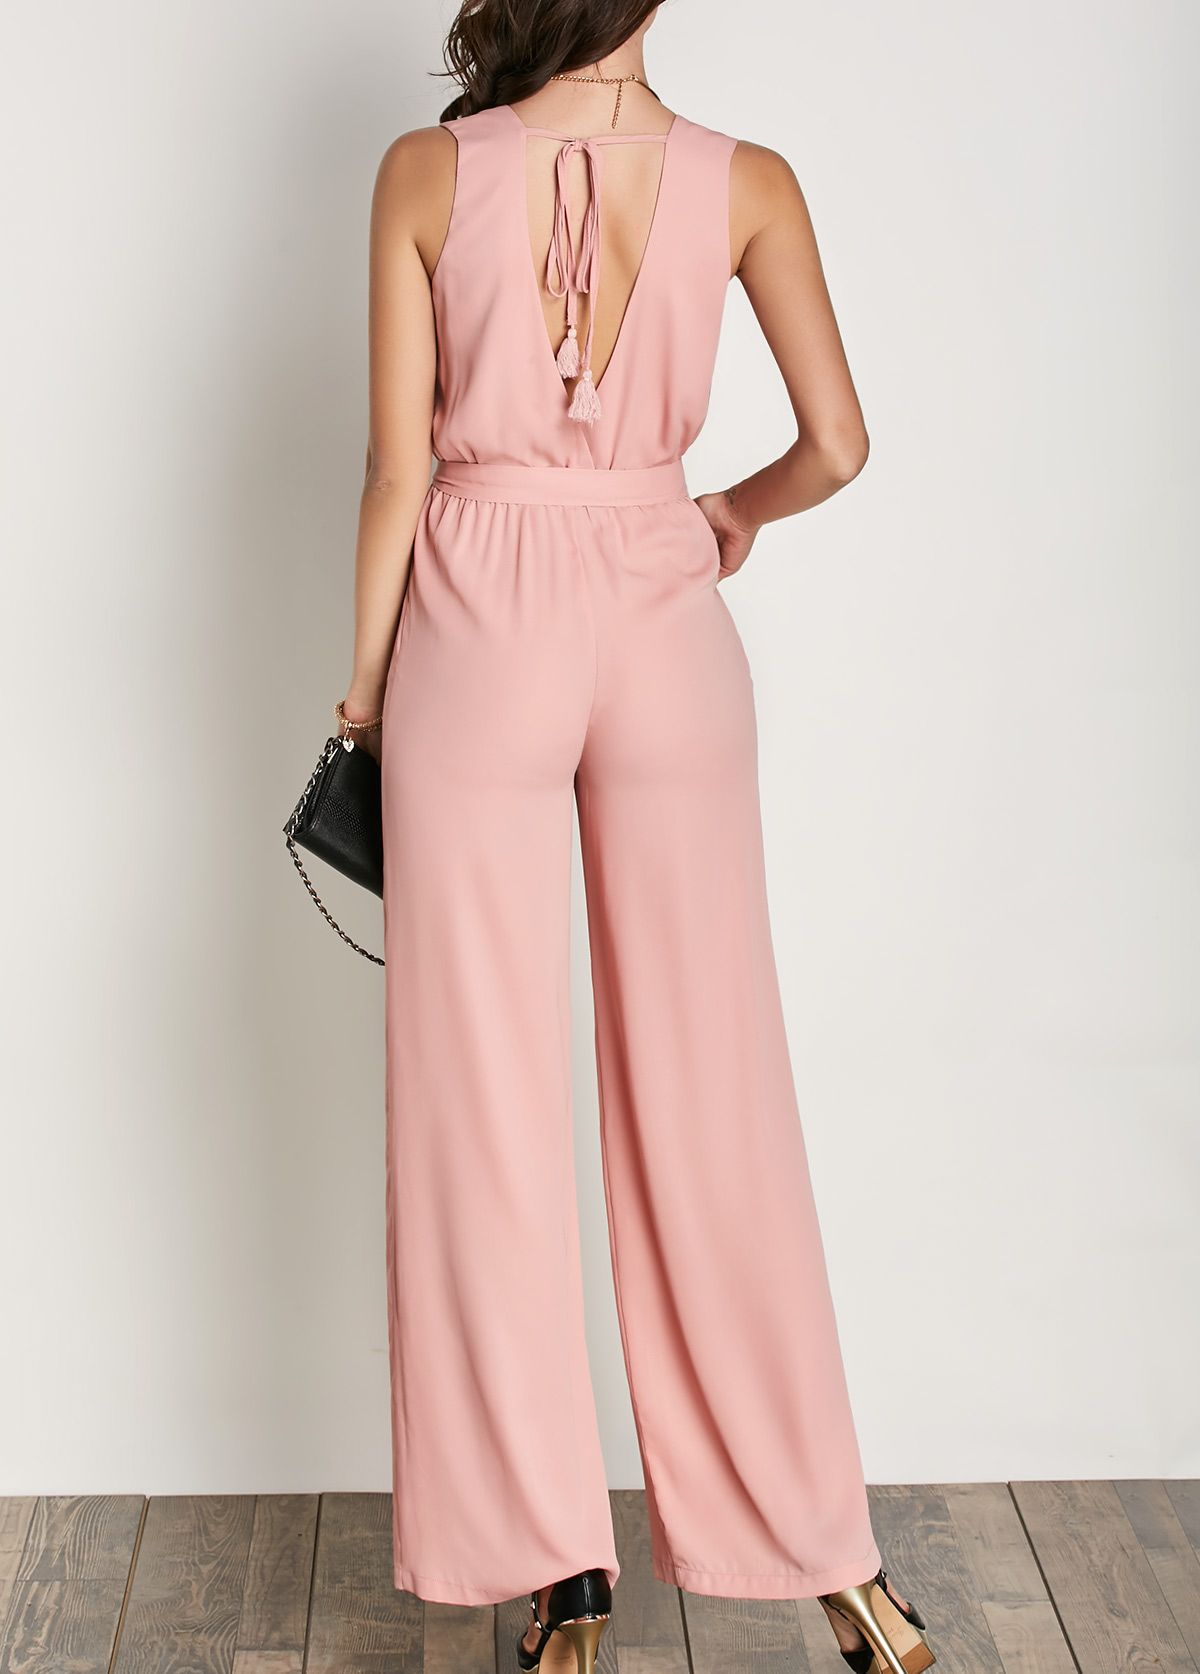 V Neck Pink Sleeveless Belted Jumpsuit | Palazos, Pasaporte y Informal